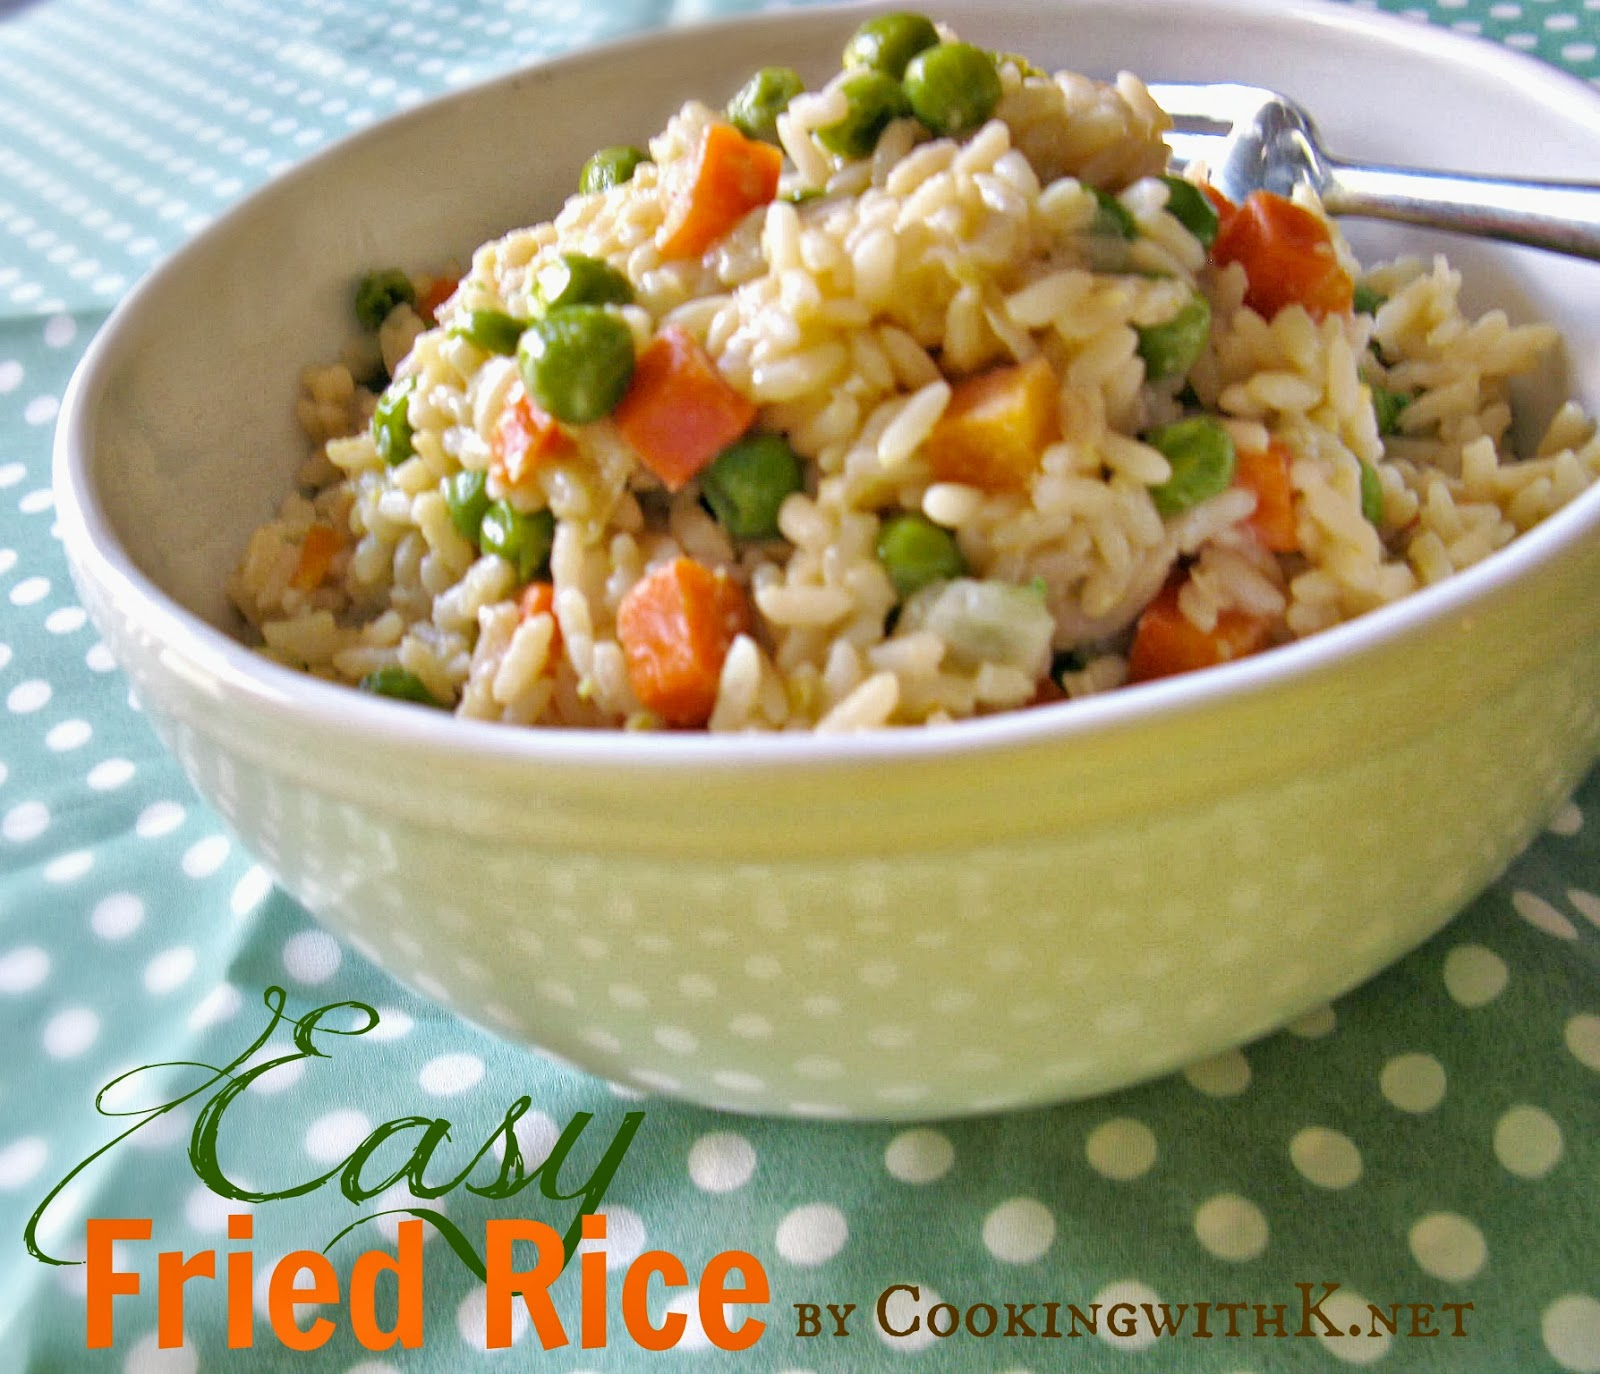 Cooking with k easy fried rice no need for take out make it easy fried rice ccuart Choice Image